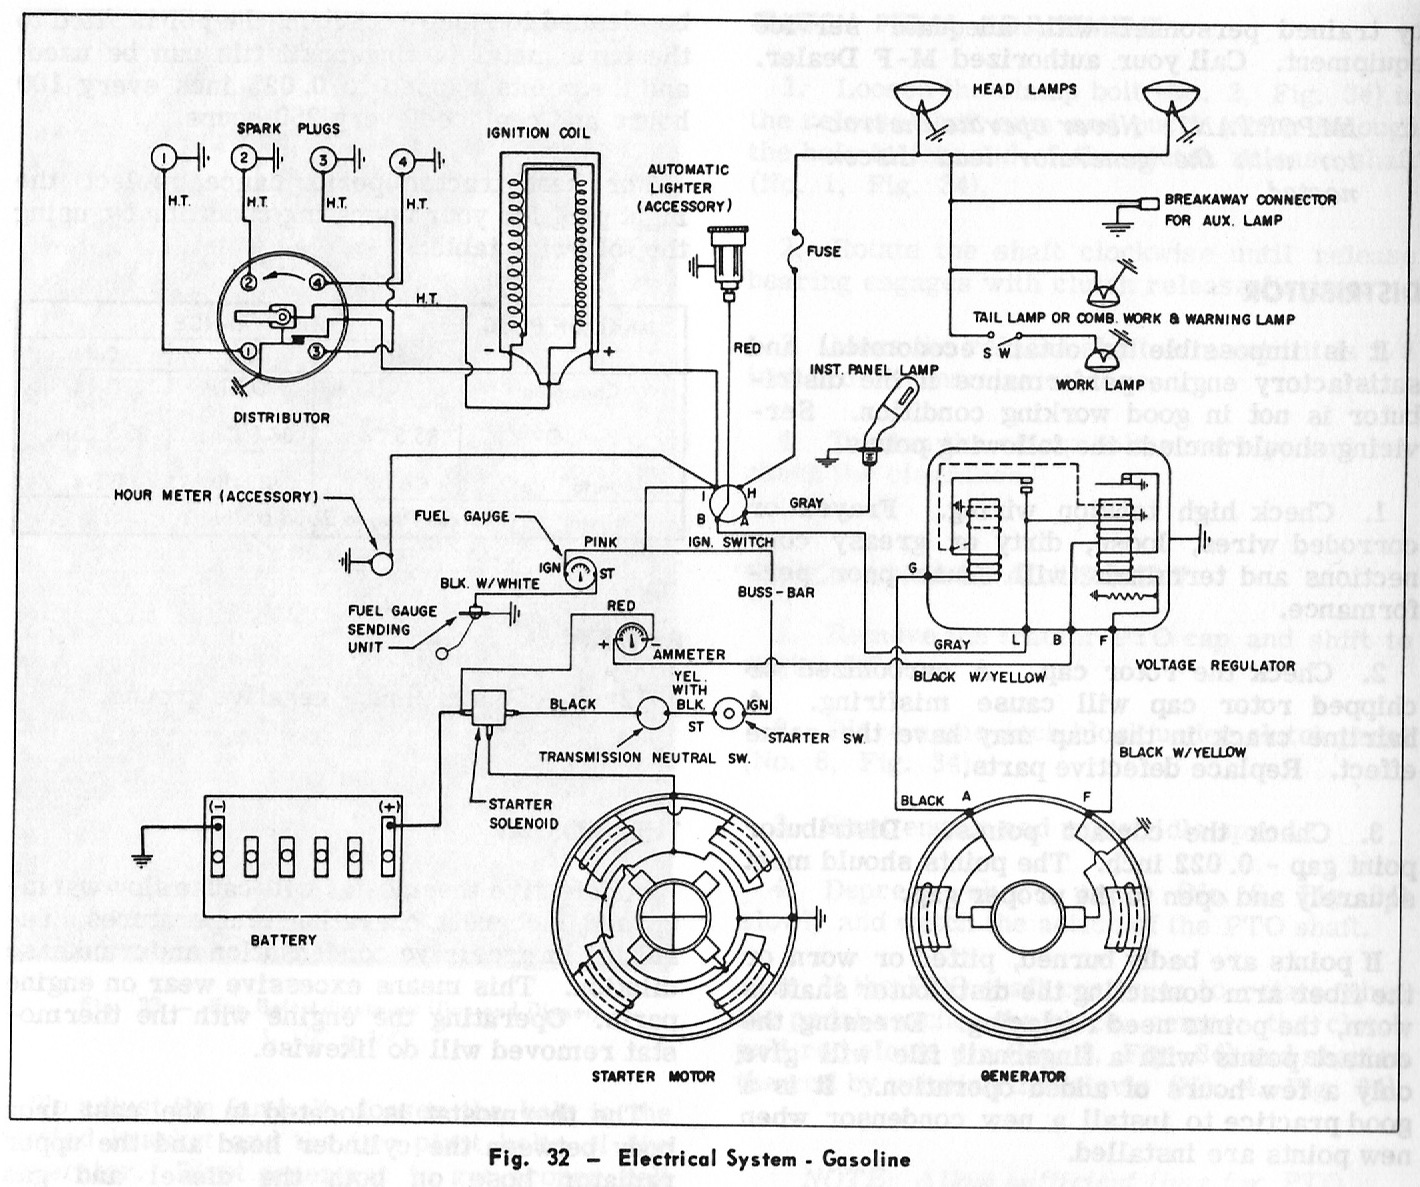 Massey Ferguson 240 Parts Diagram Easy Volcano Wiring For 65  The